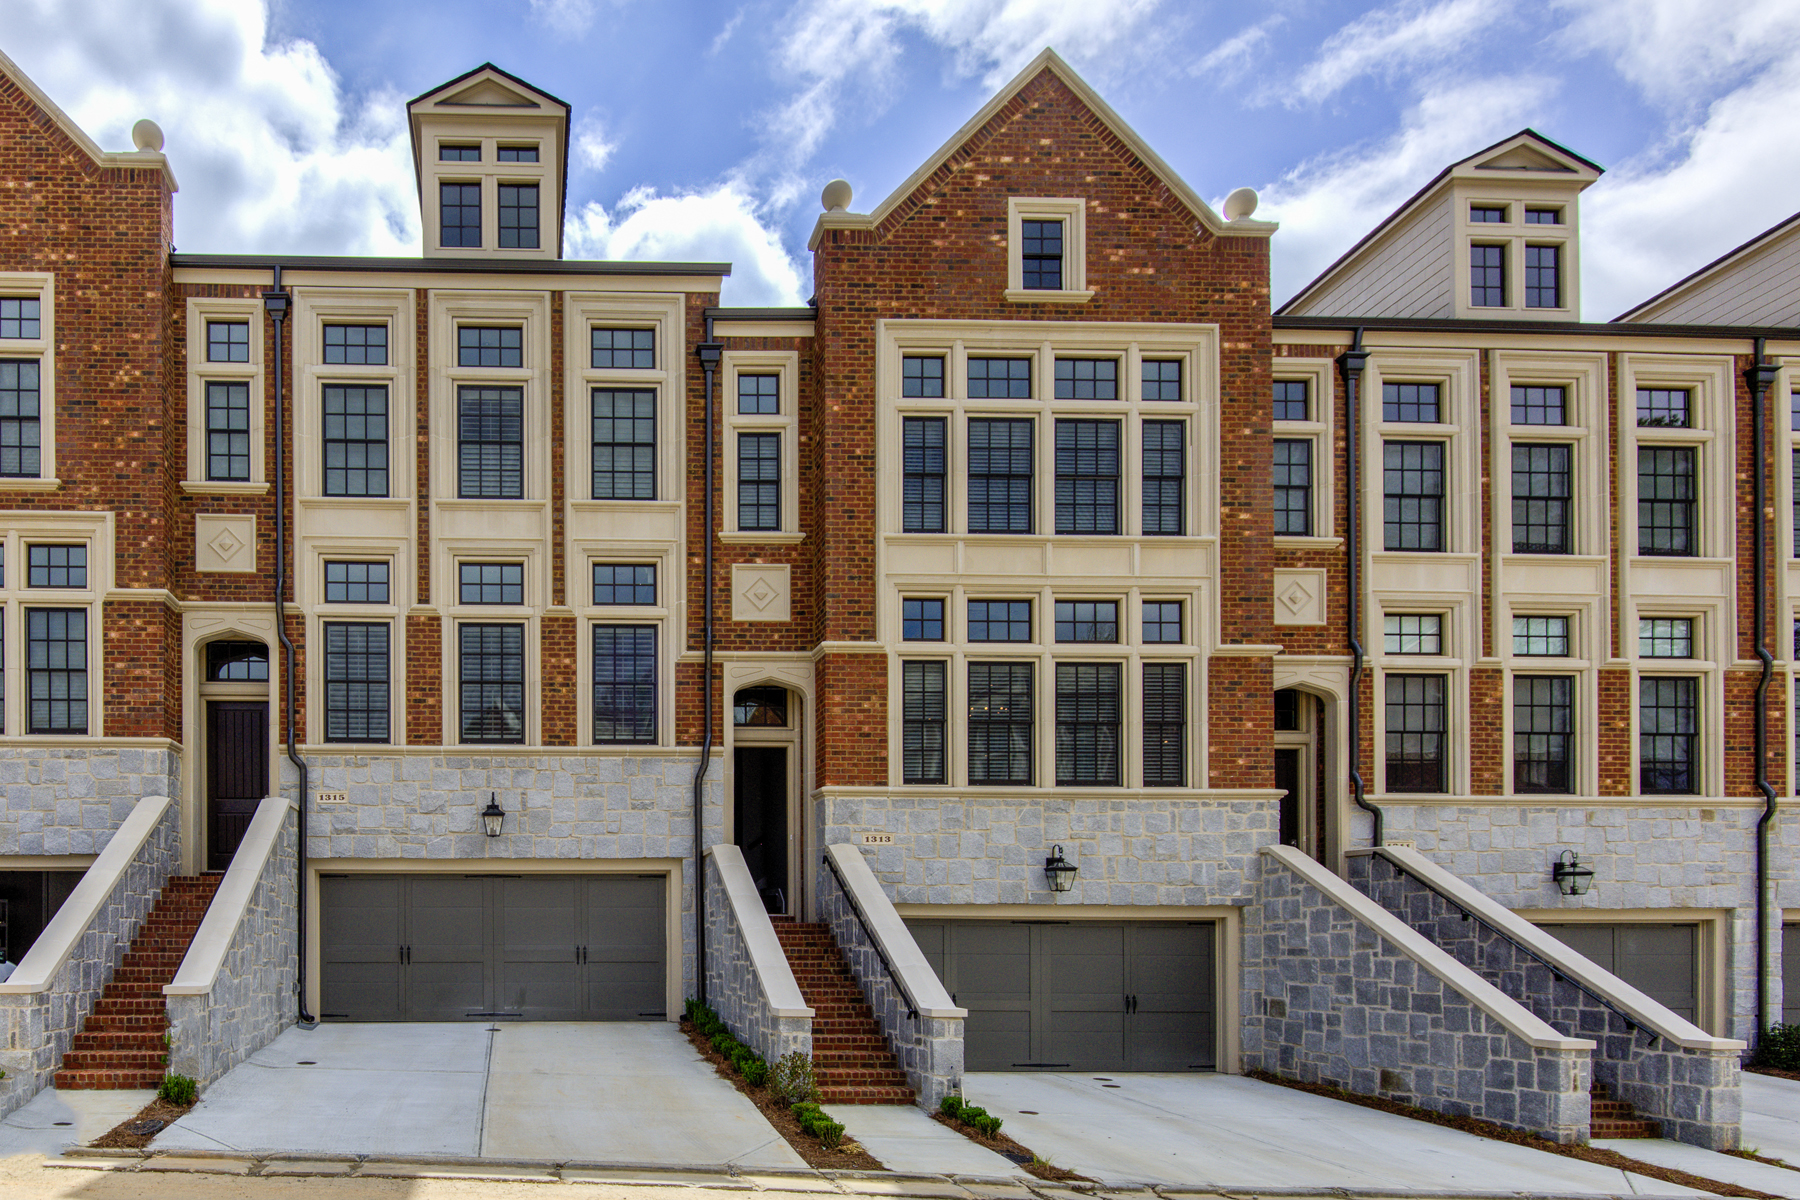 타운하우스 용 임대 에 Fabulous Three Bedroom, Three and a Half Bath Townhome for Rent 1313 Dover Circle NE Brookhaven, 조지아 30319 미국